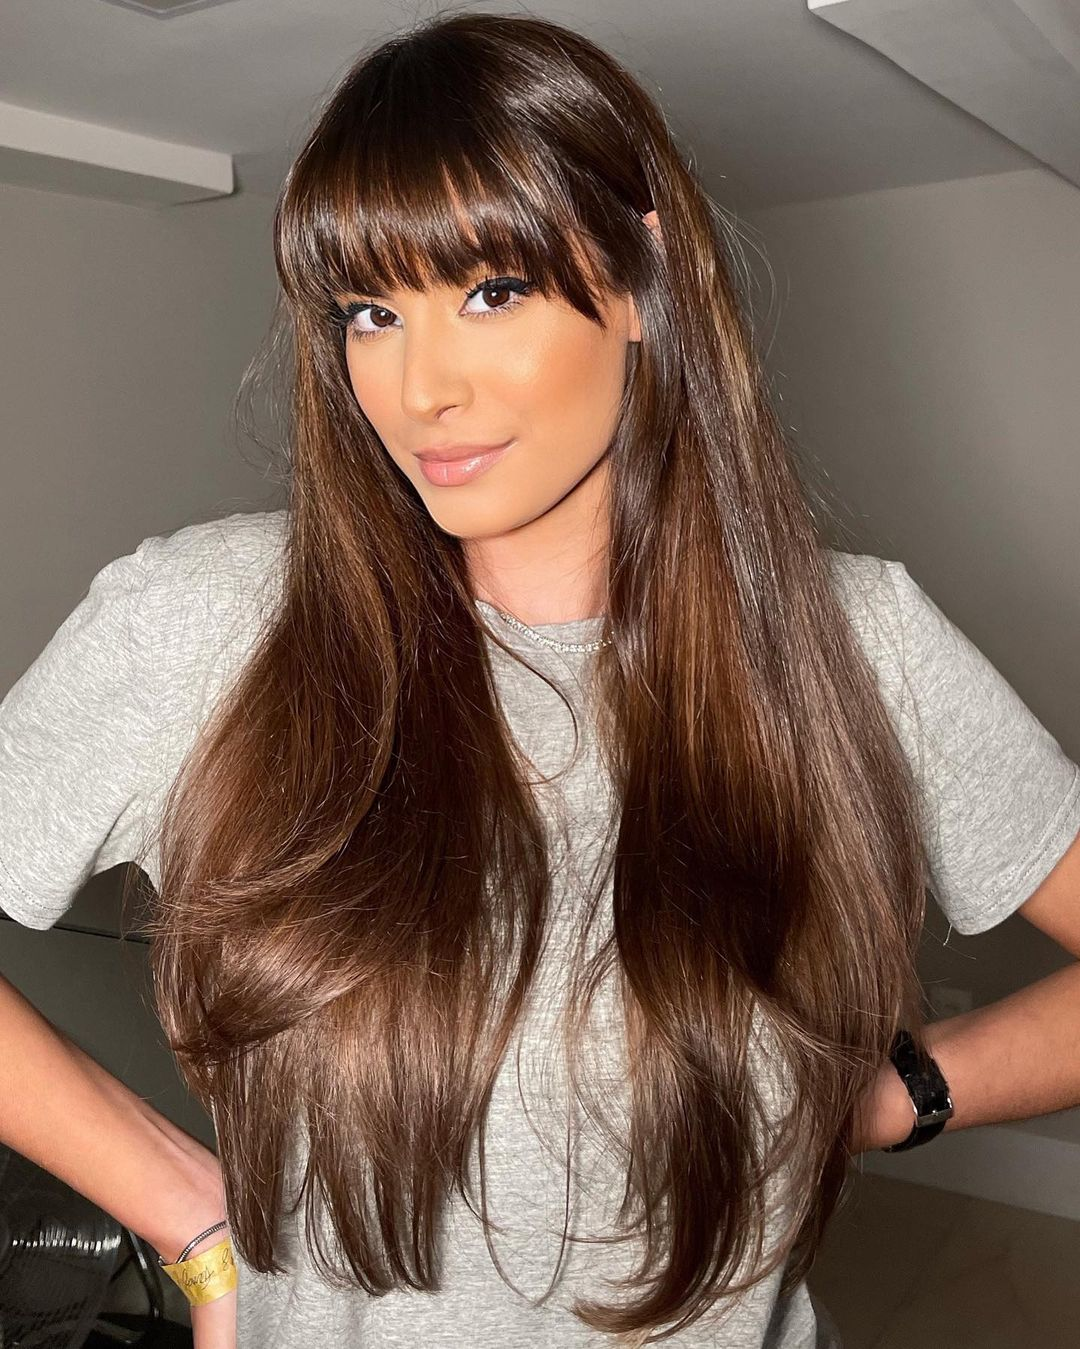 How to Make Hair Shiny at Home with Homemade Treatments